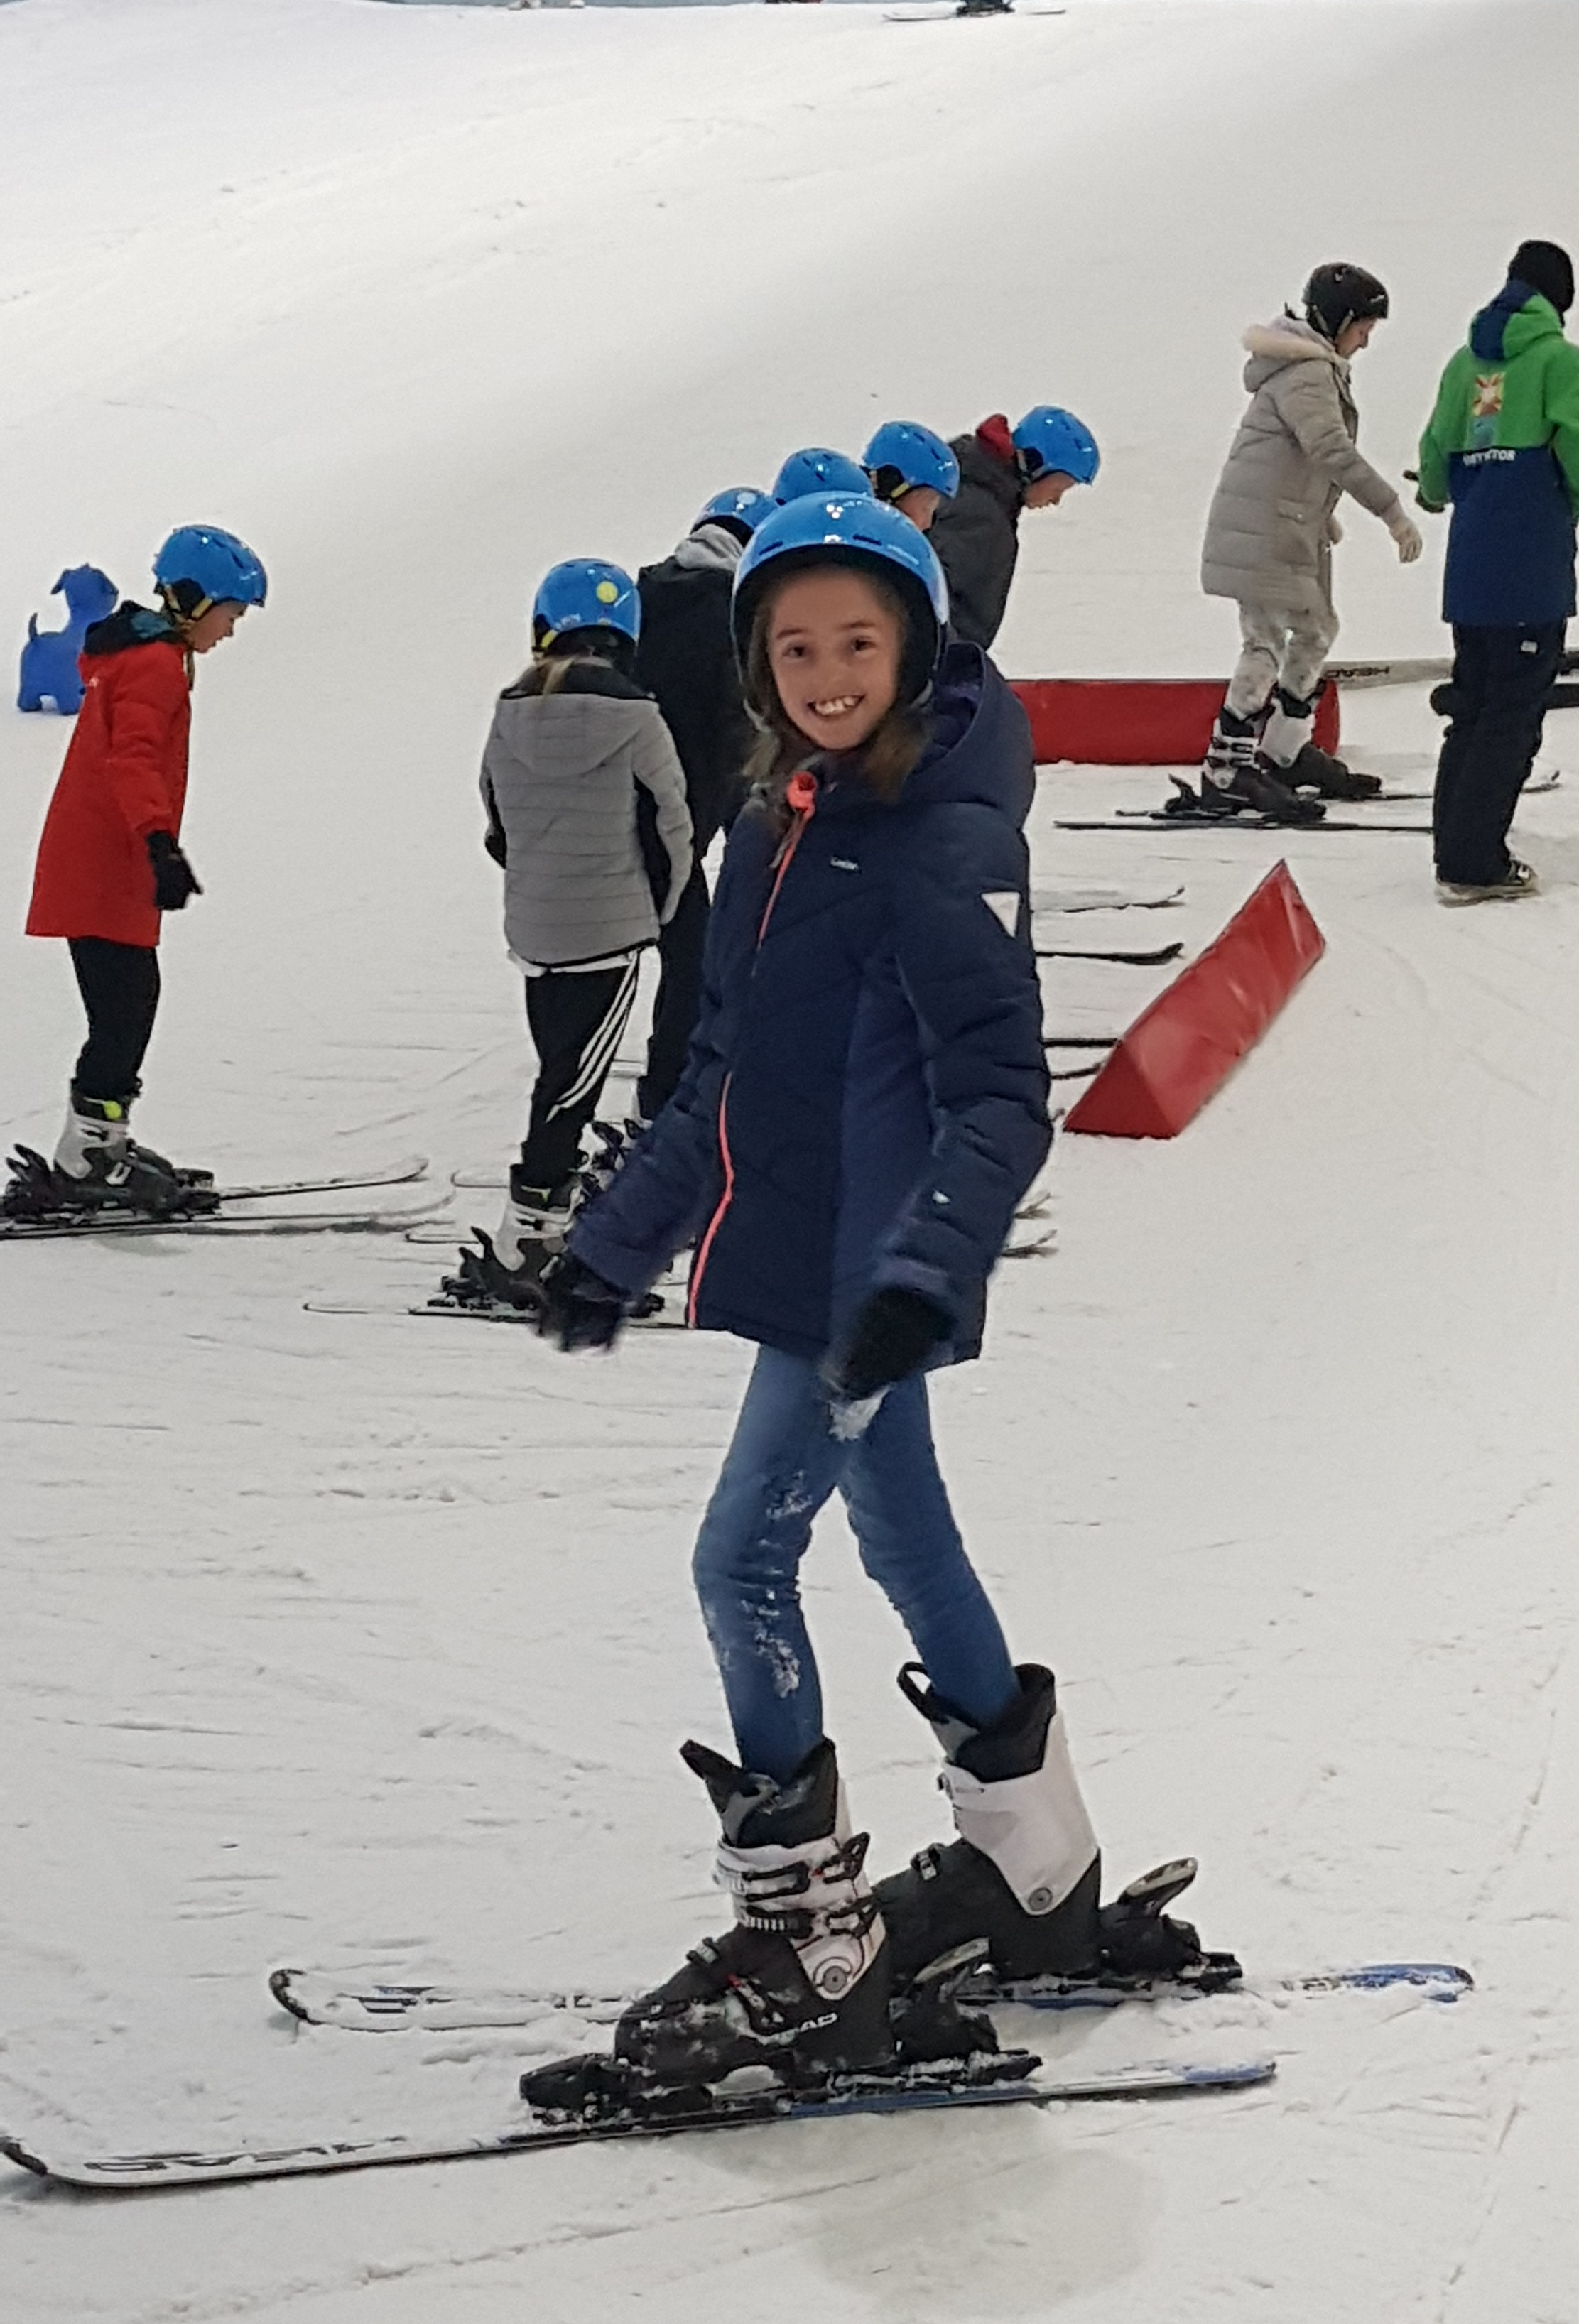 Listerdale Junior Academy pupil Meredith Davidson, 11, was one of 29 pupils who went skiing as a reward for working hard at her SATs exams. Penguin PR: public relations, social media and communications